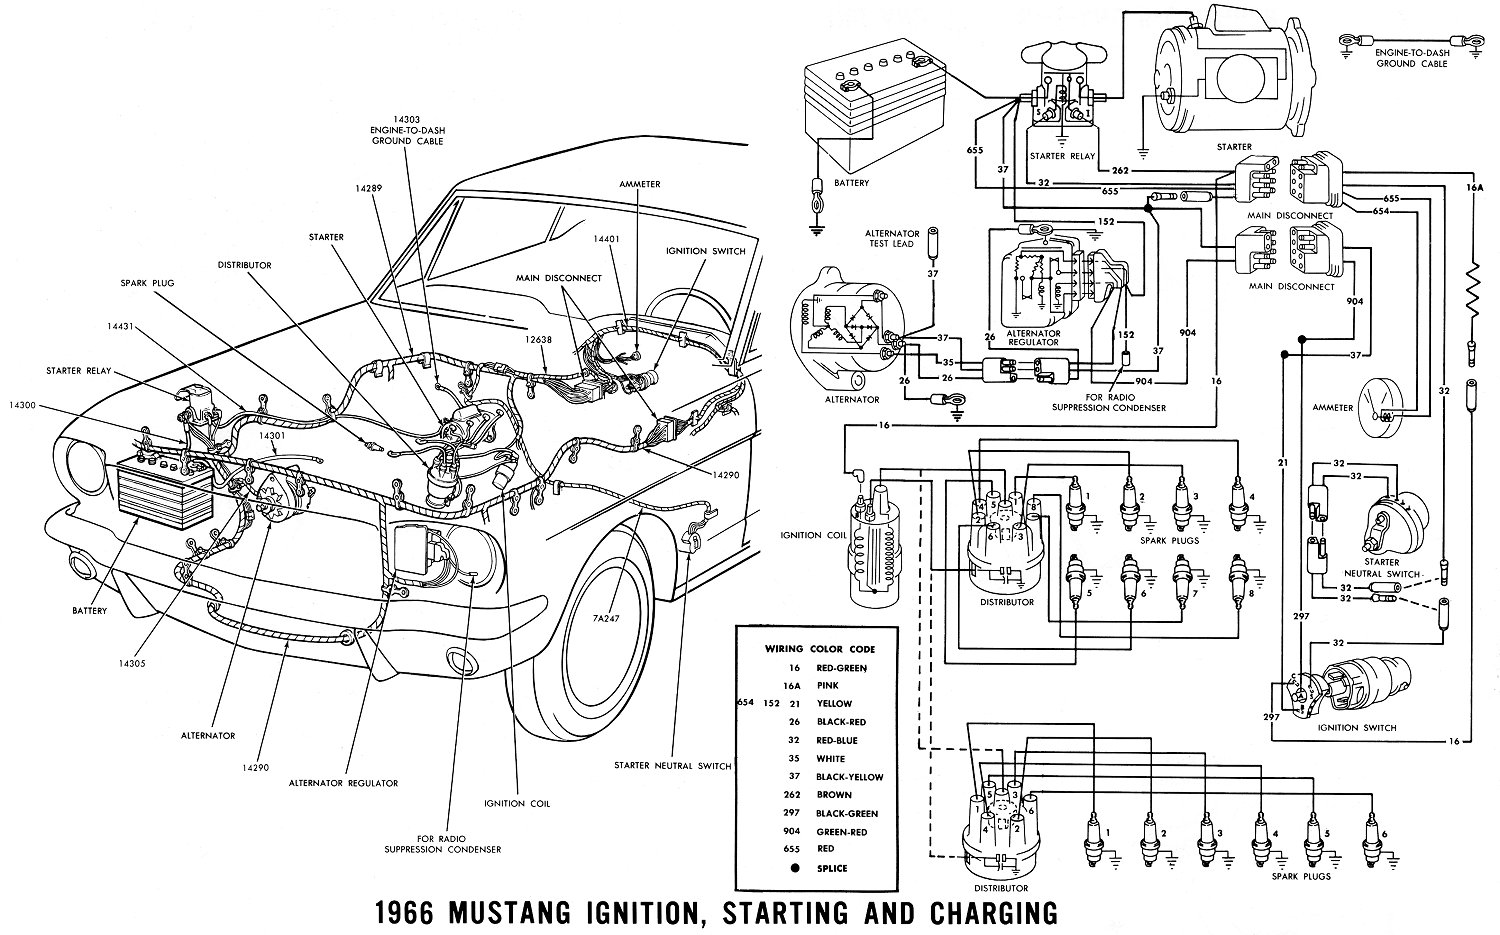 70 Thunderbird Ignition Diagram on 73 charger front suspension diagram